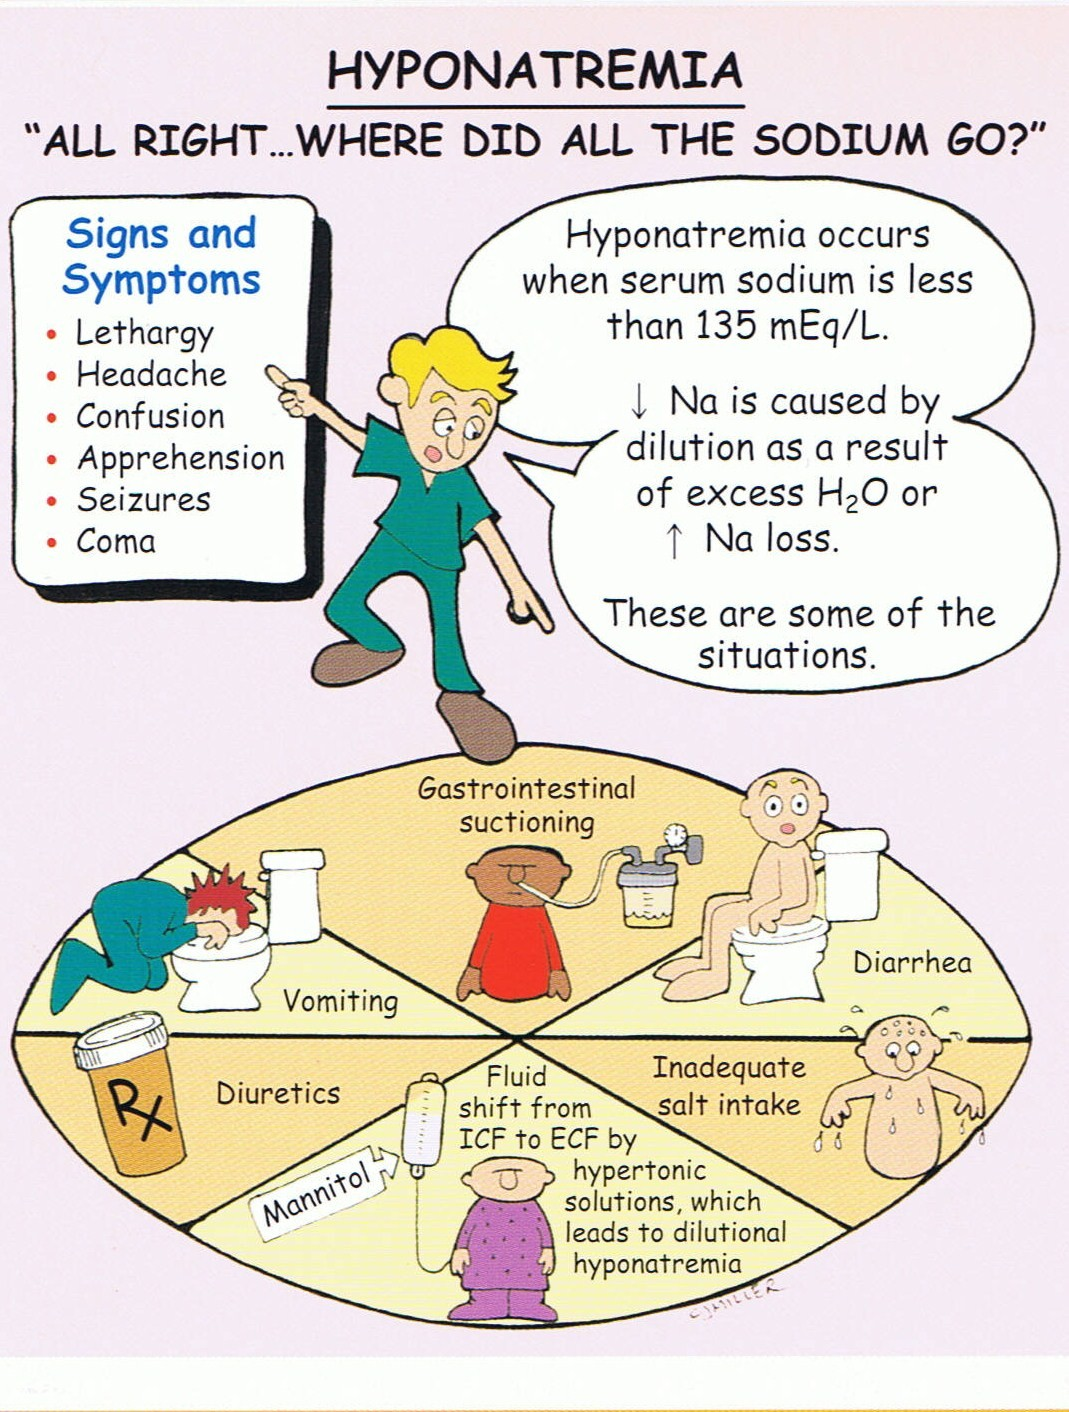 Medicine Pakistan Treatment Of Hyponatremia. Velvet Signs. Hard Signs. Khan Academy Signs. Bat Signs. Animated Happy Birthday Signs. Black Signs Of Stroke. Patient Room Signs Of Stroke. Toddler Rash Signs